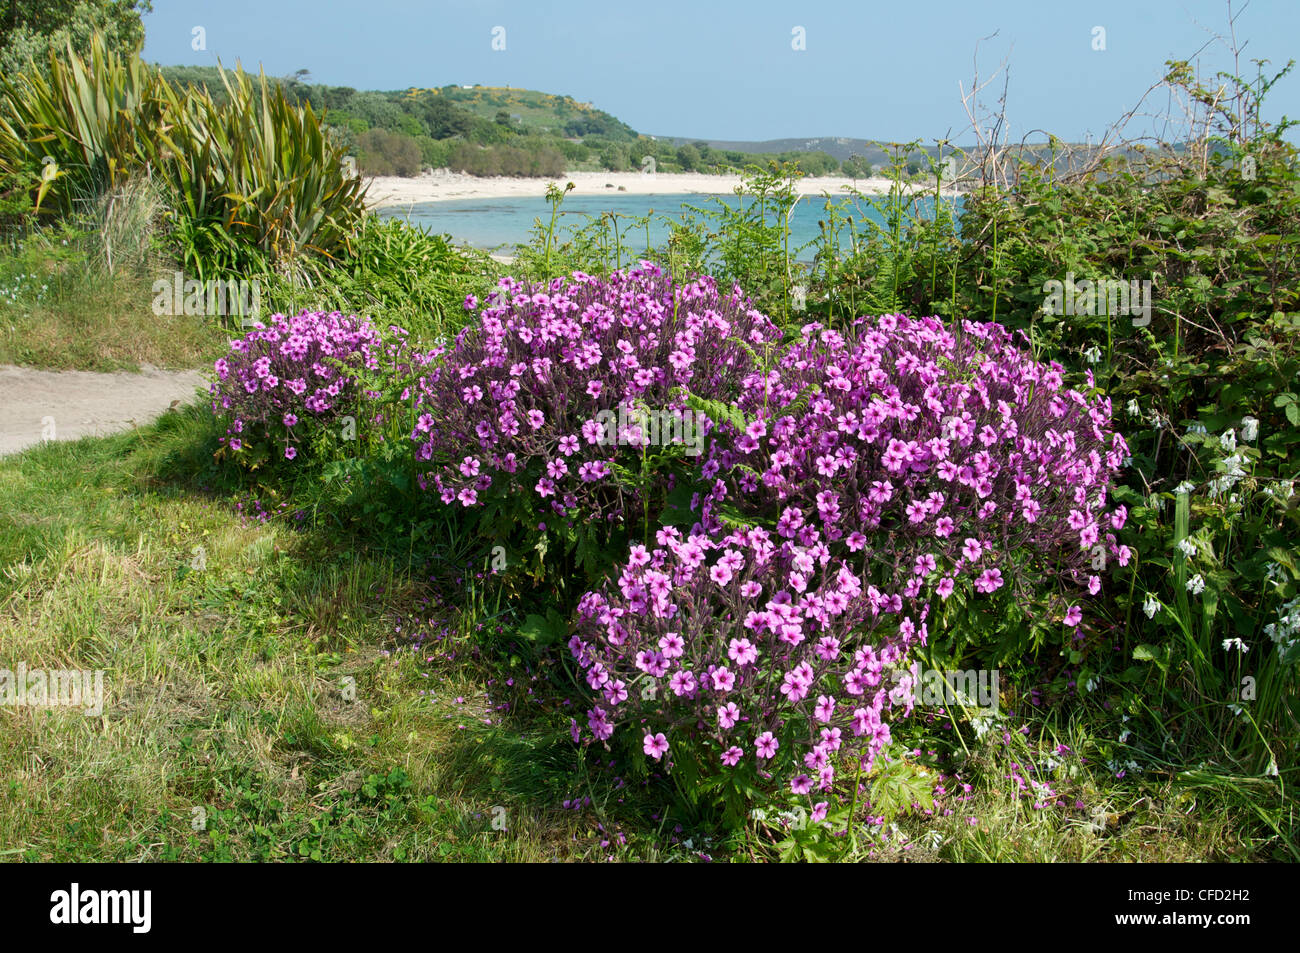 Bryher, Isles of Scilly, United Kingdom, Europe - Stock Image